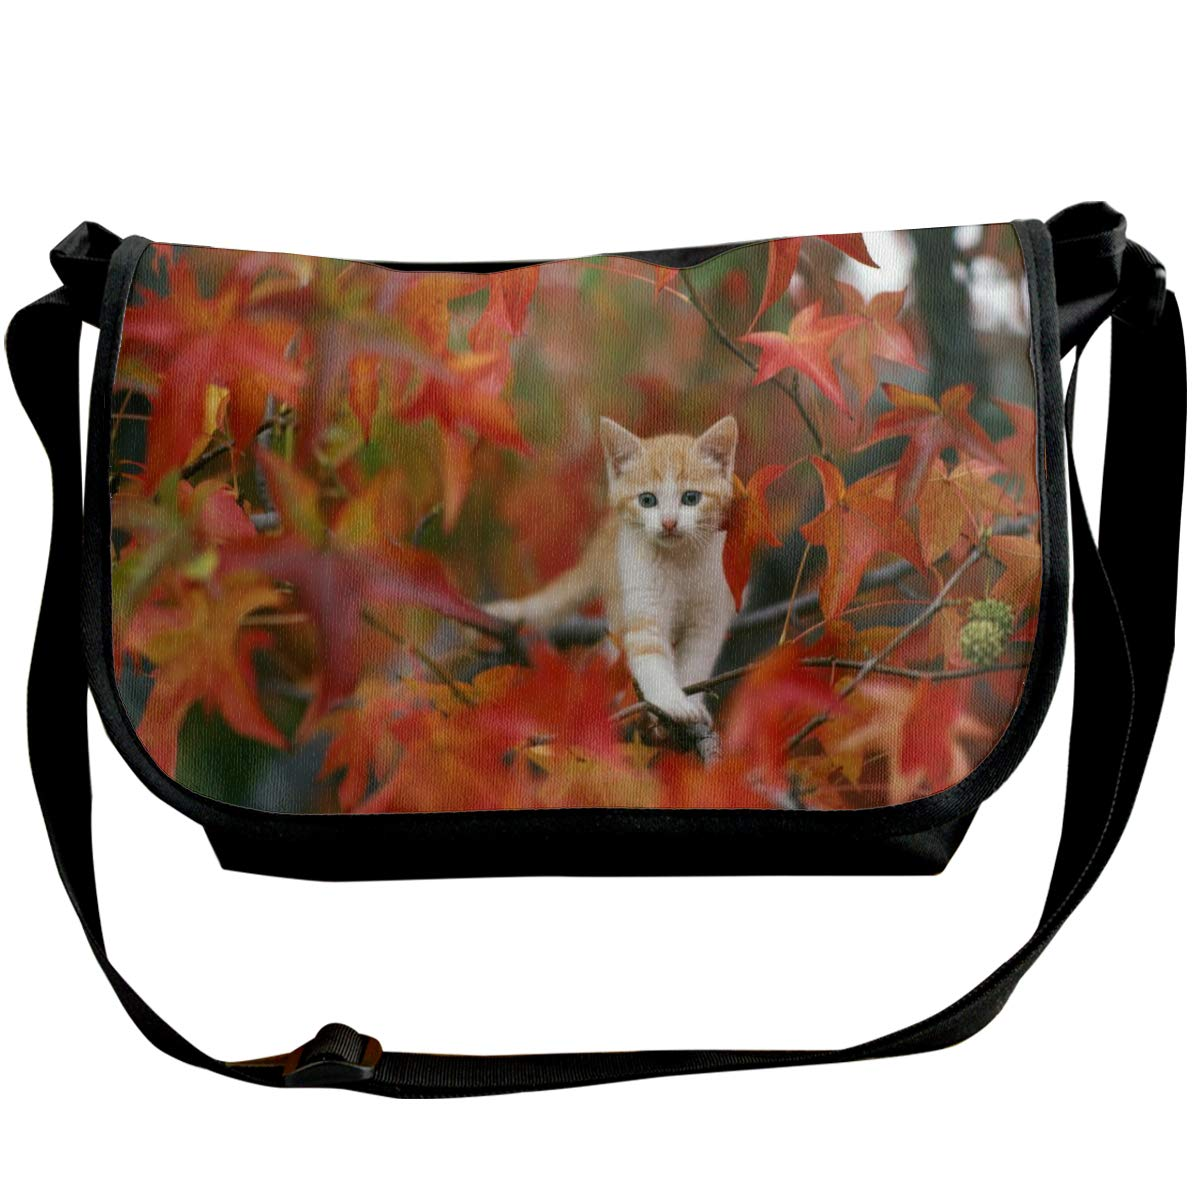 Taslilye Baby Animal Cat Fall Kitten Leaf Customized Wide Crossbody Shoulder Bag For Men And Women For Daily Work Or Travel